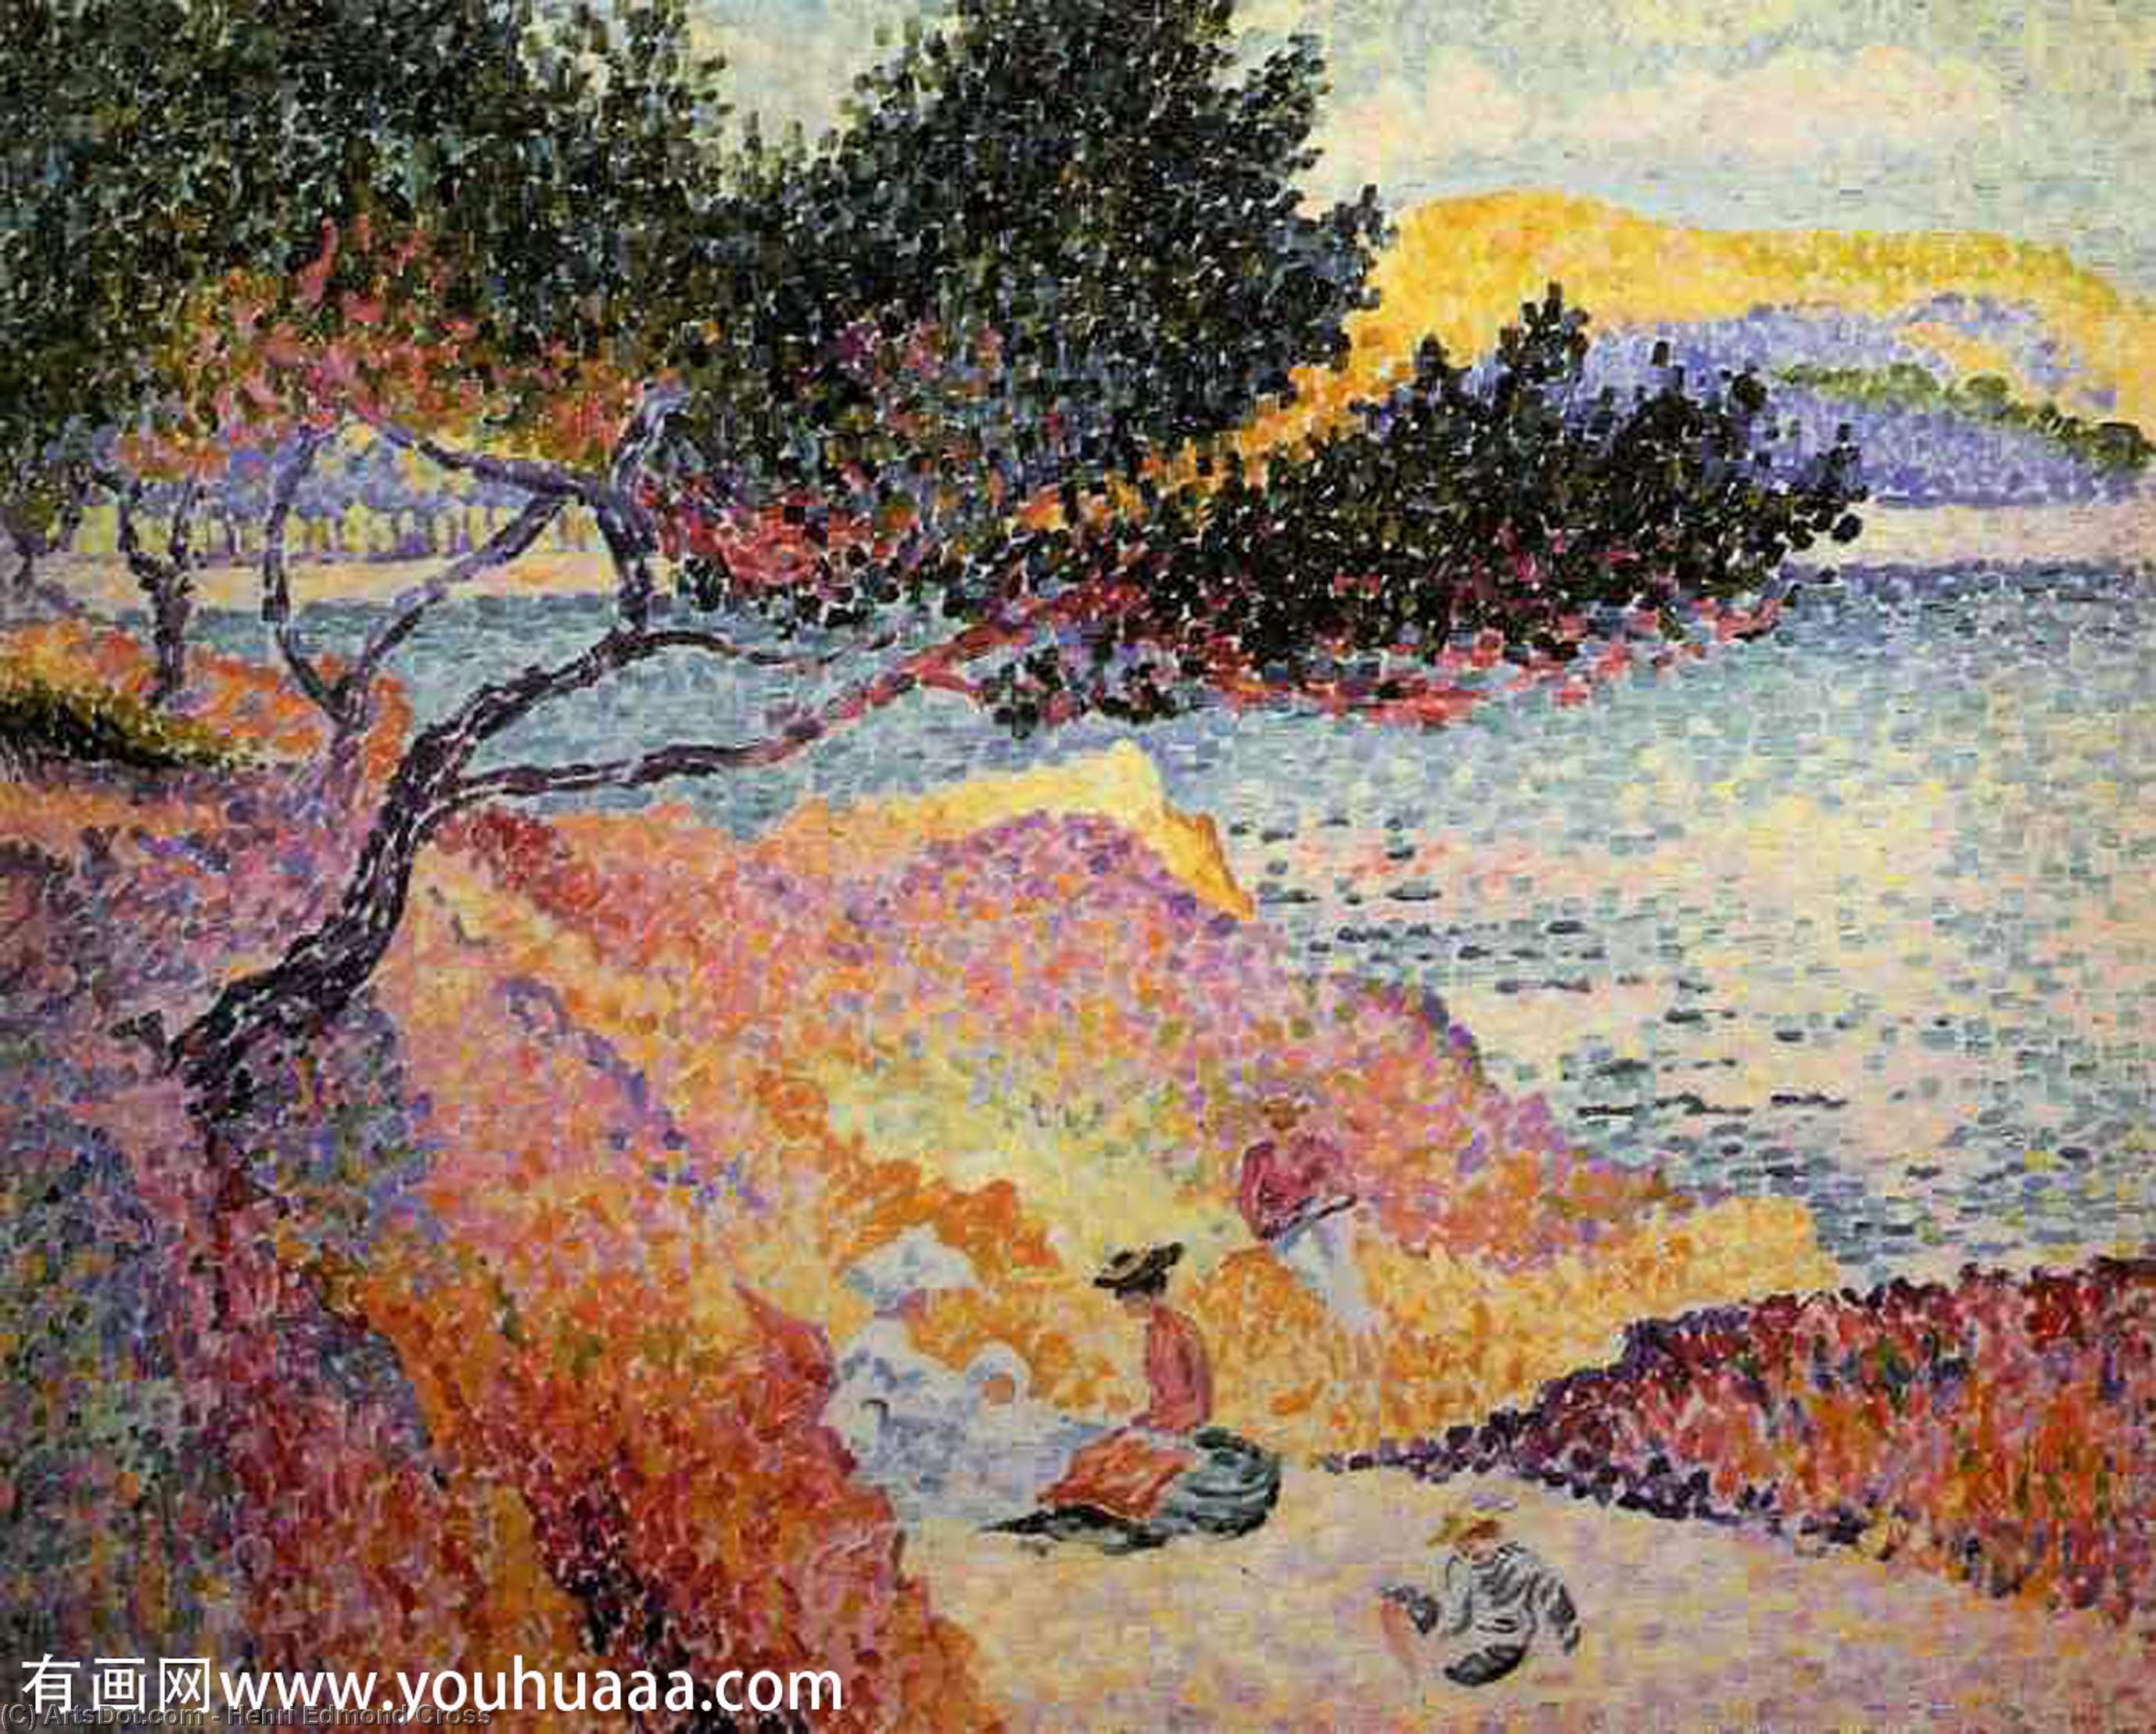 The Bay at Cavaliere by Henri Edmond Cross (1856-1910, France)